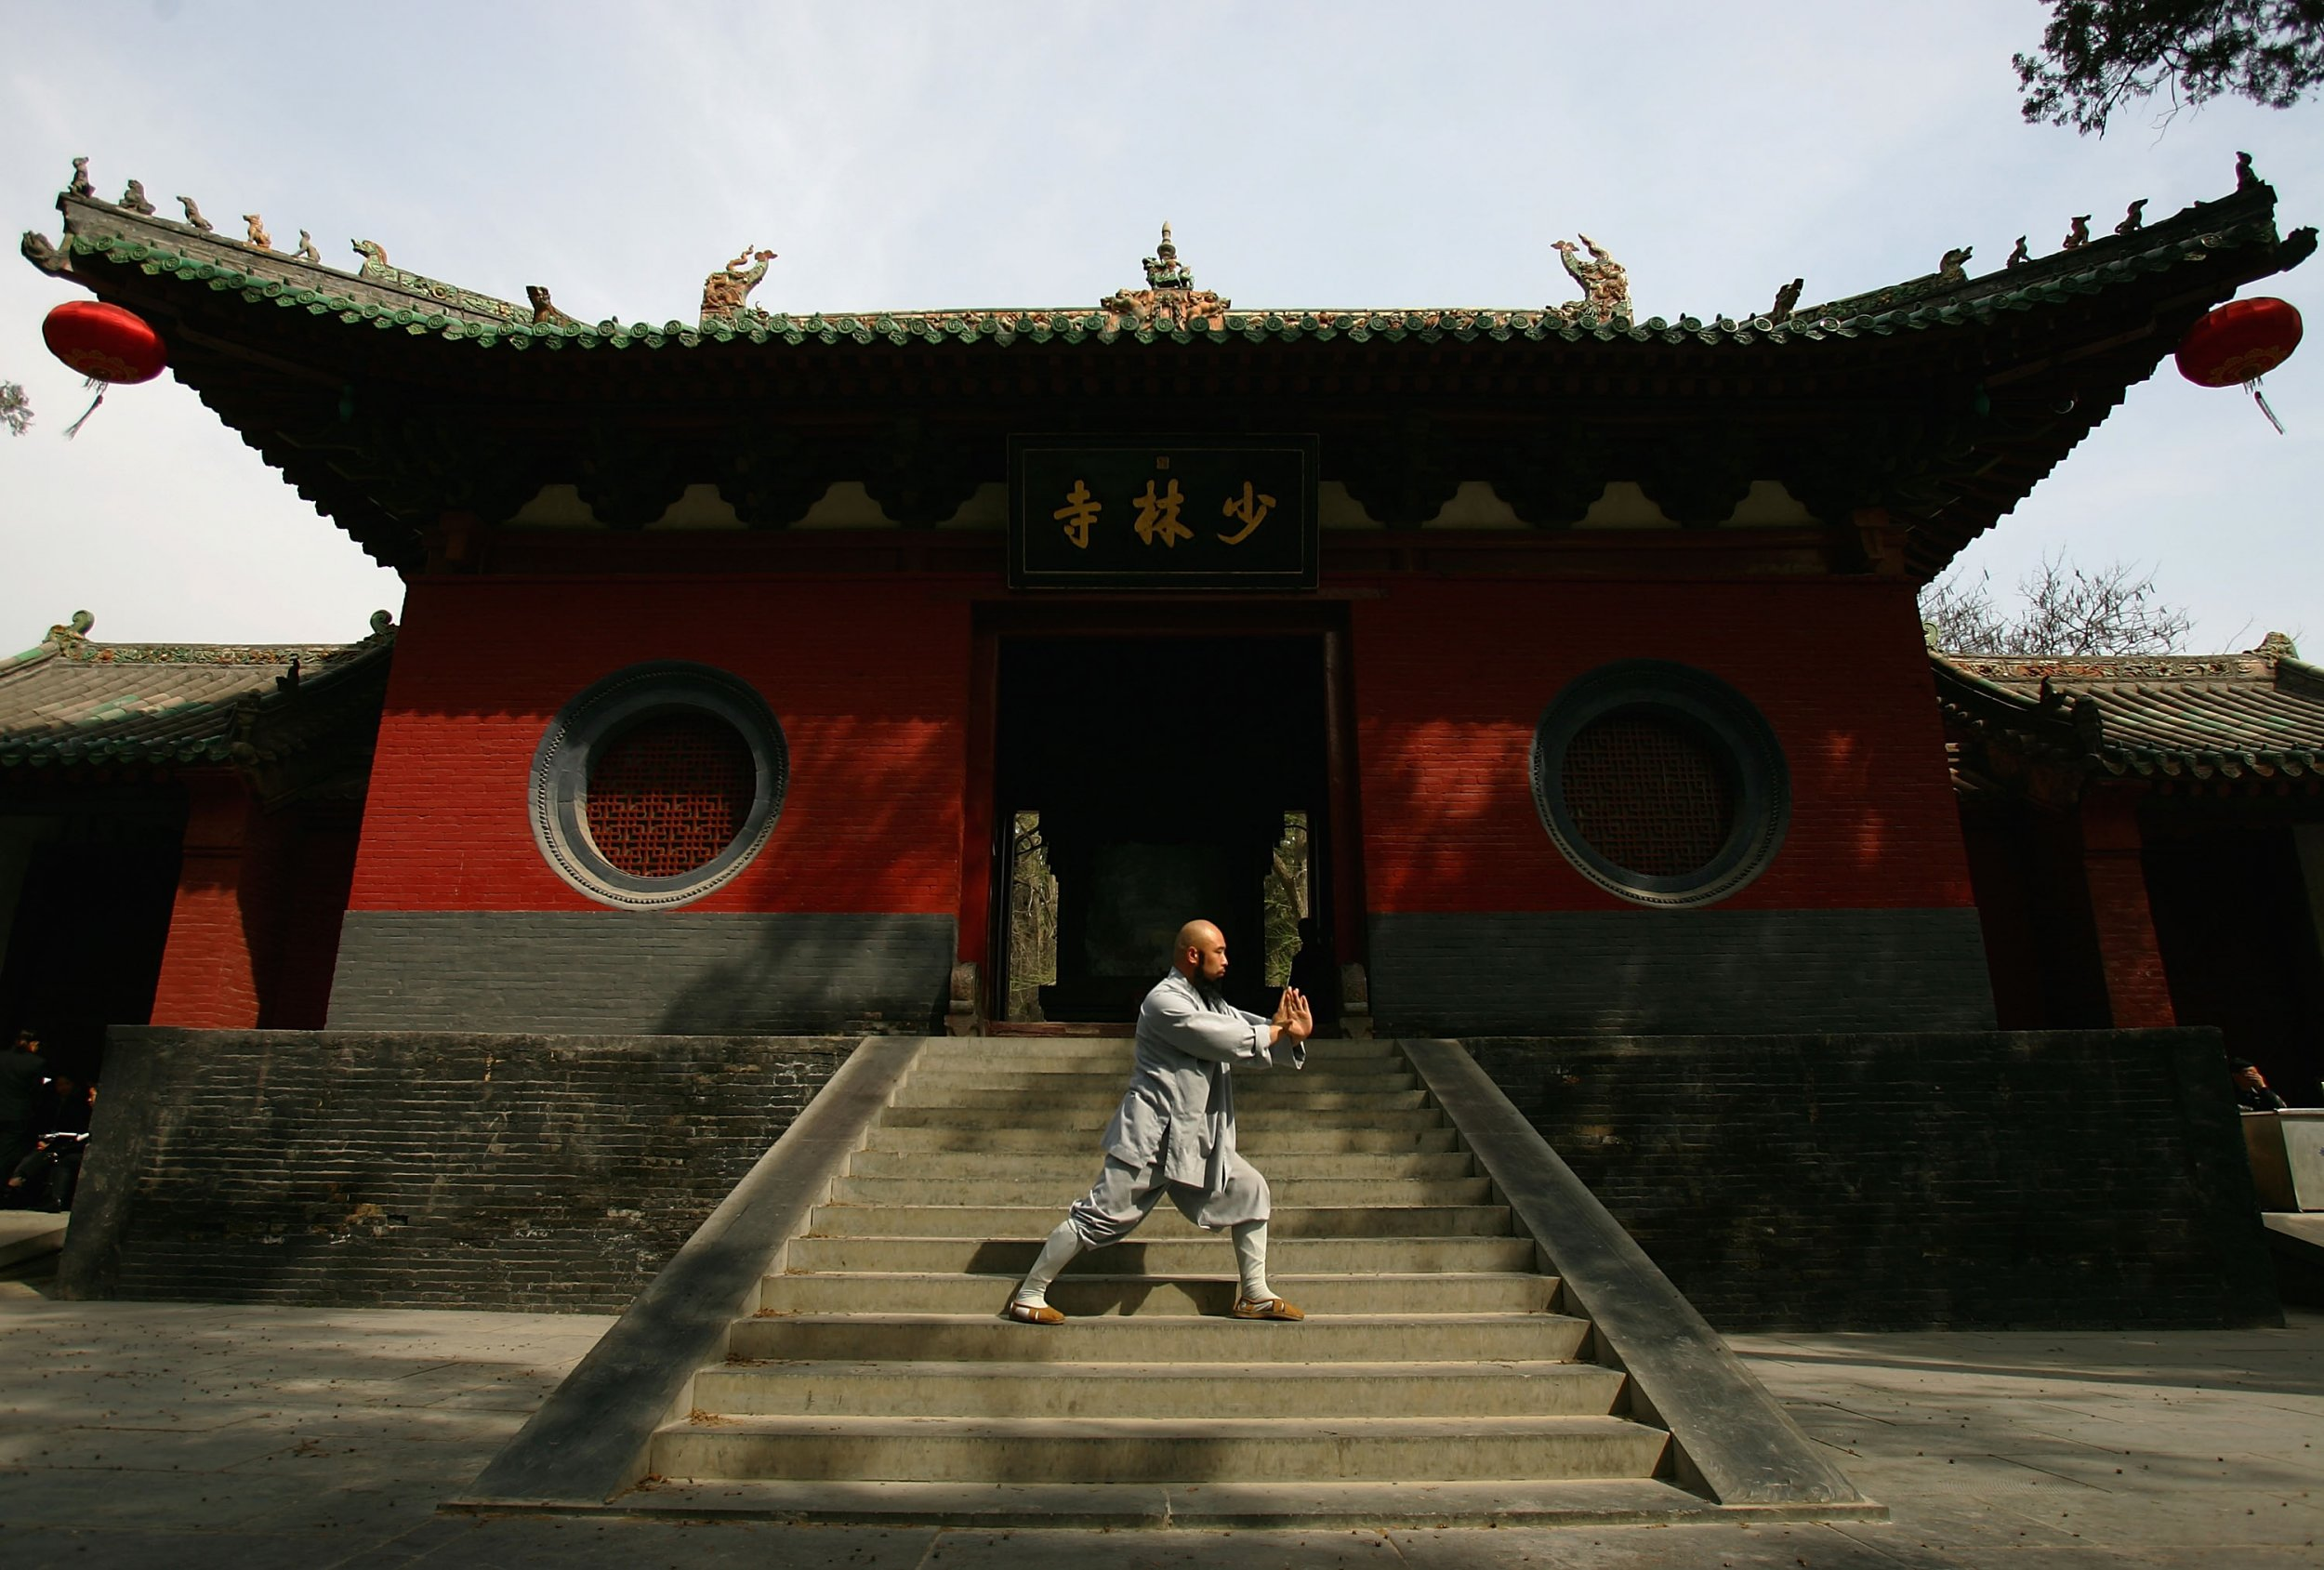 A monk practises outside the Shaolin temple